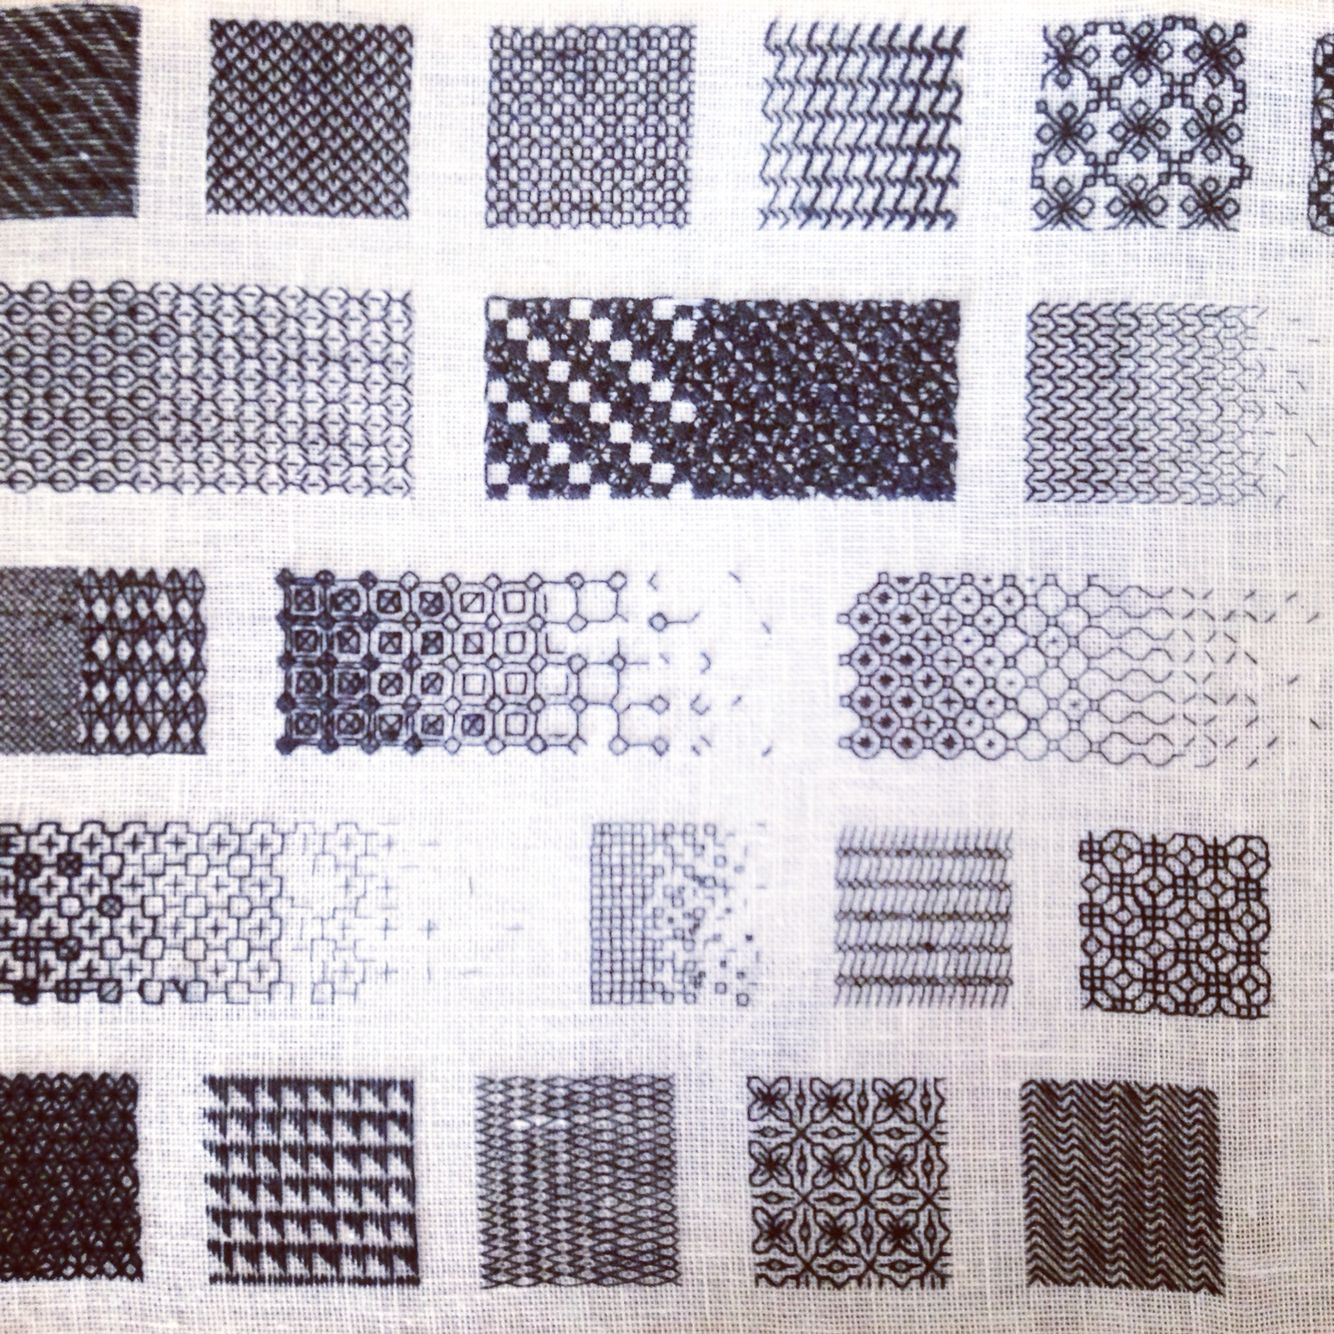 Exploring new Stitch formations using traditional Blackwork